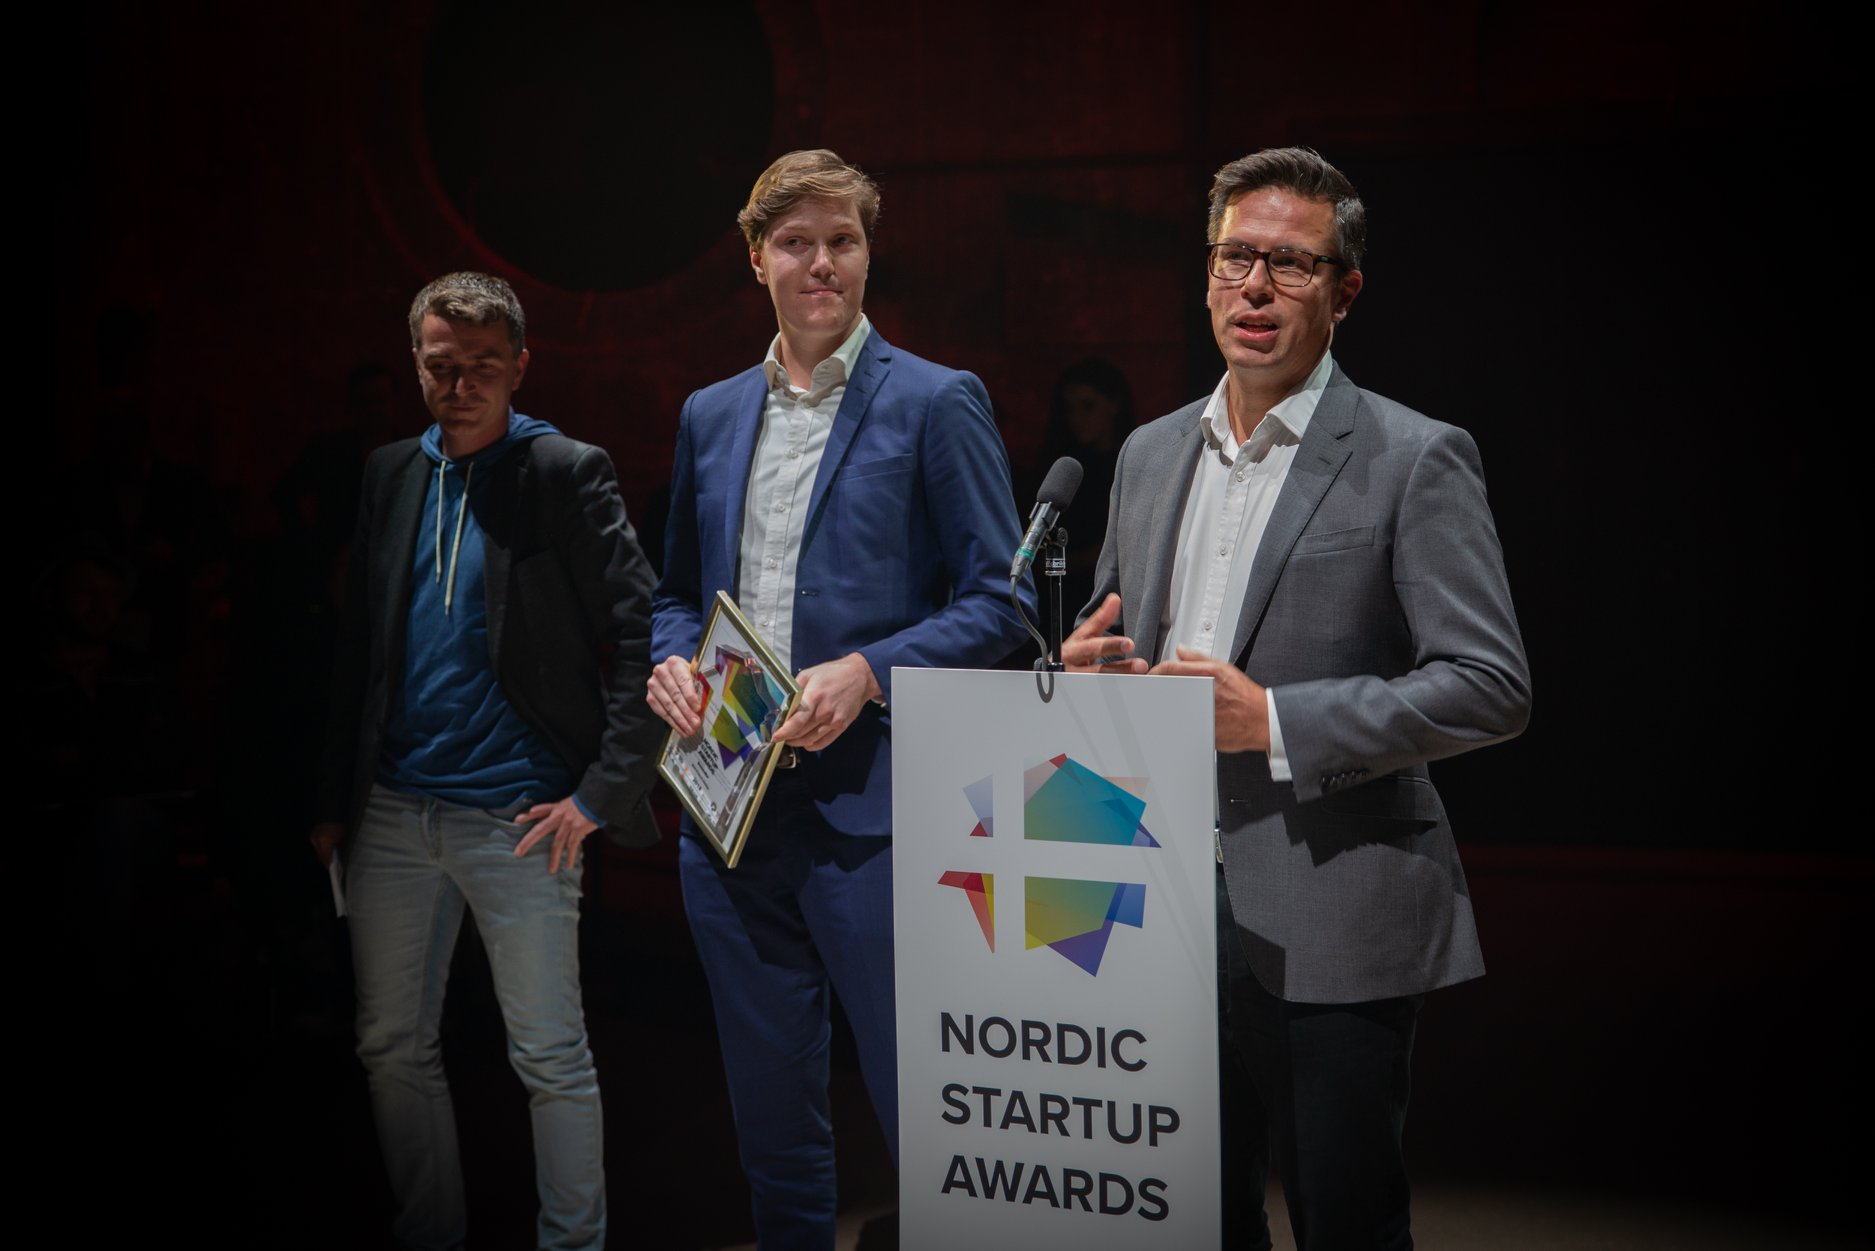 Invesdor wins title of Best Nordic Fintech Startup of the Year